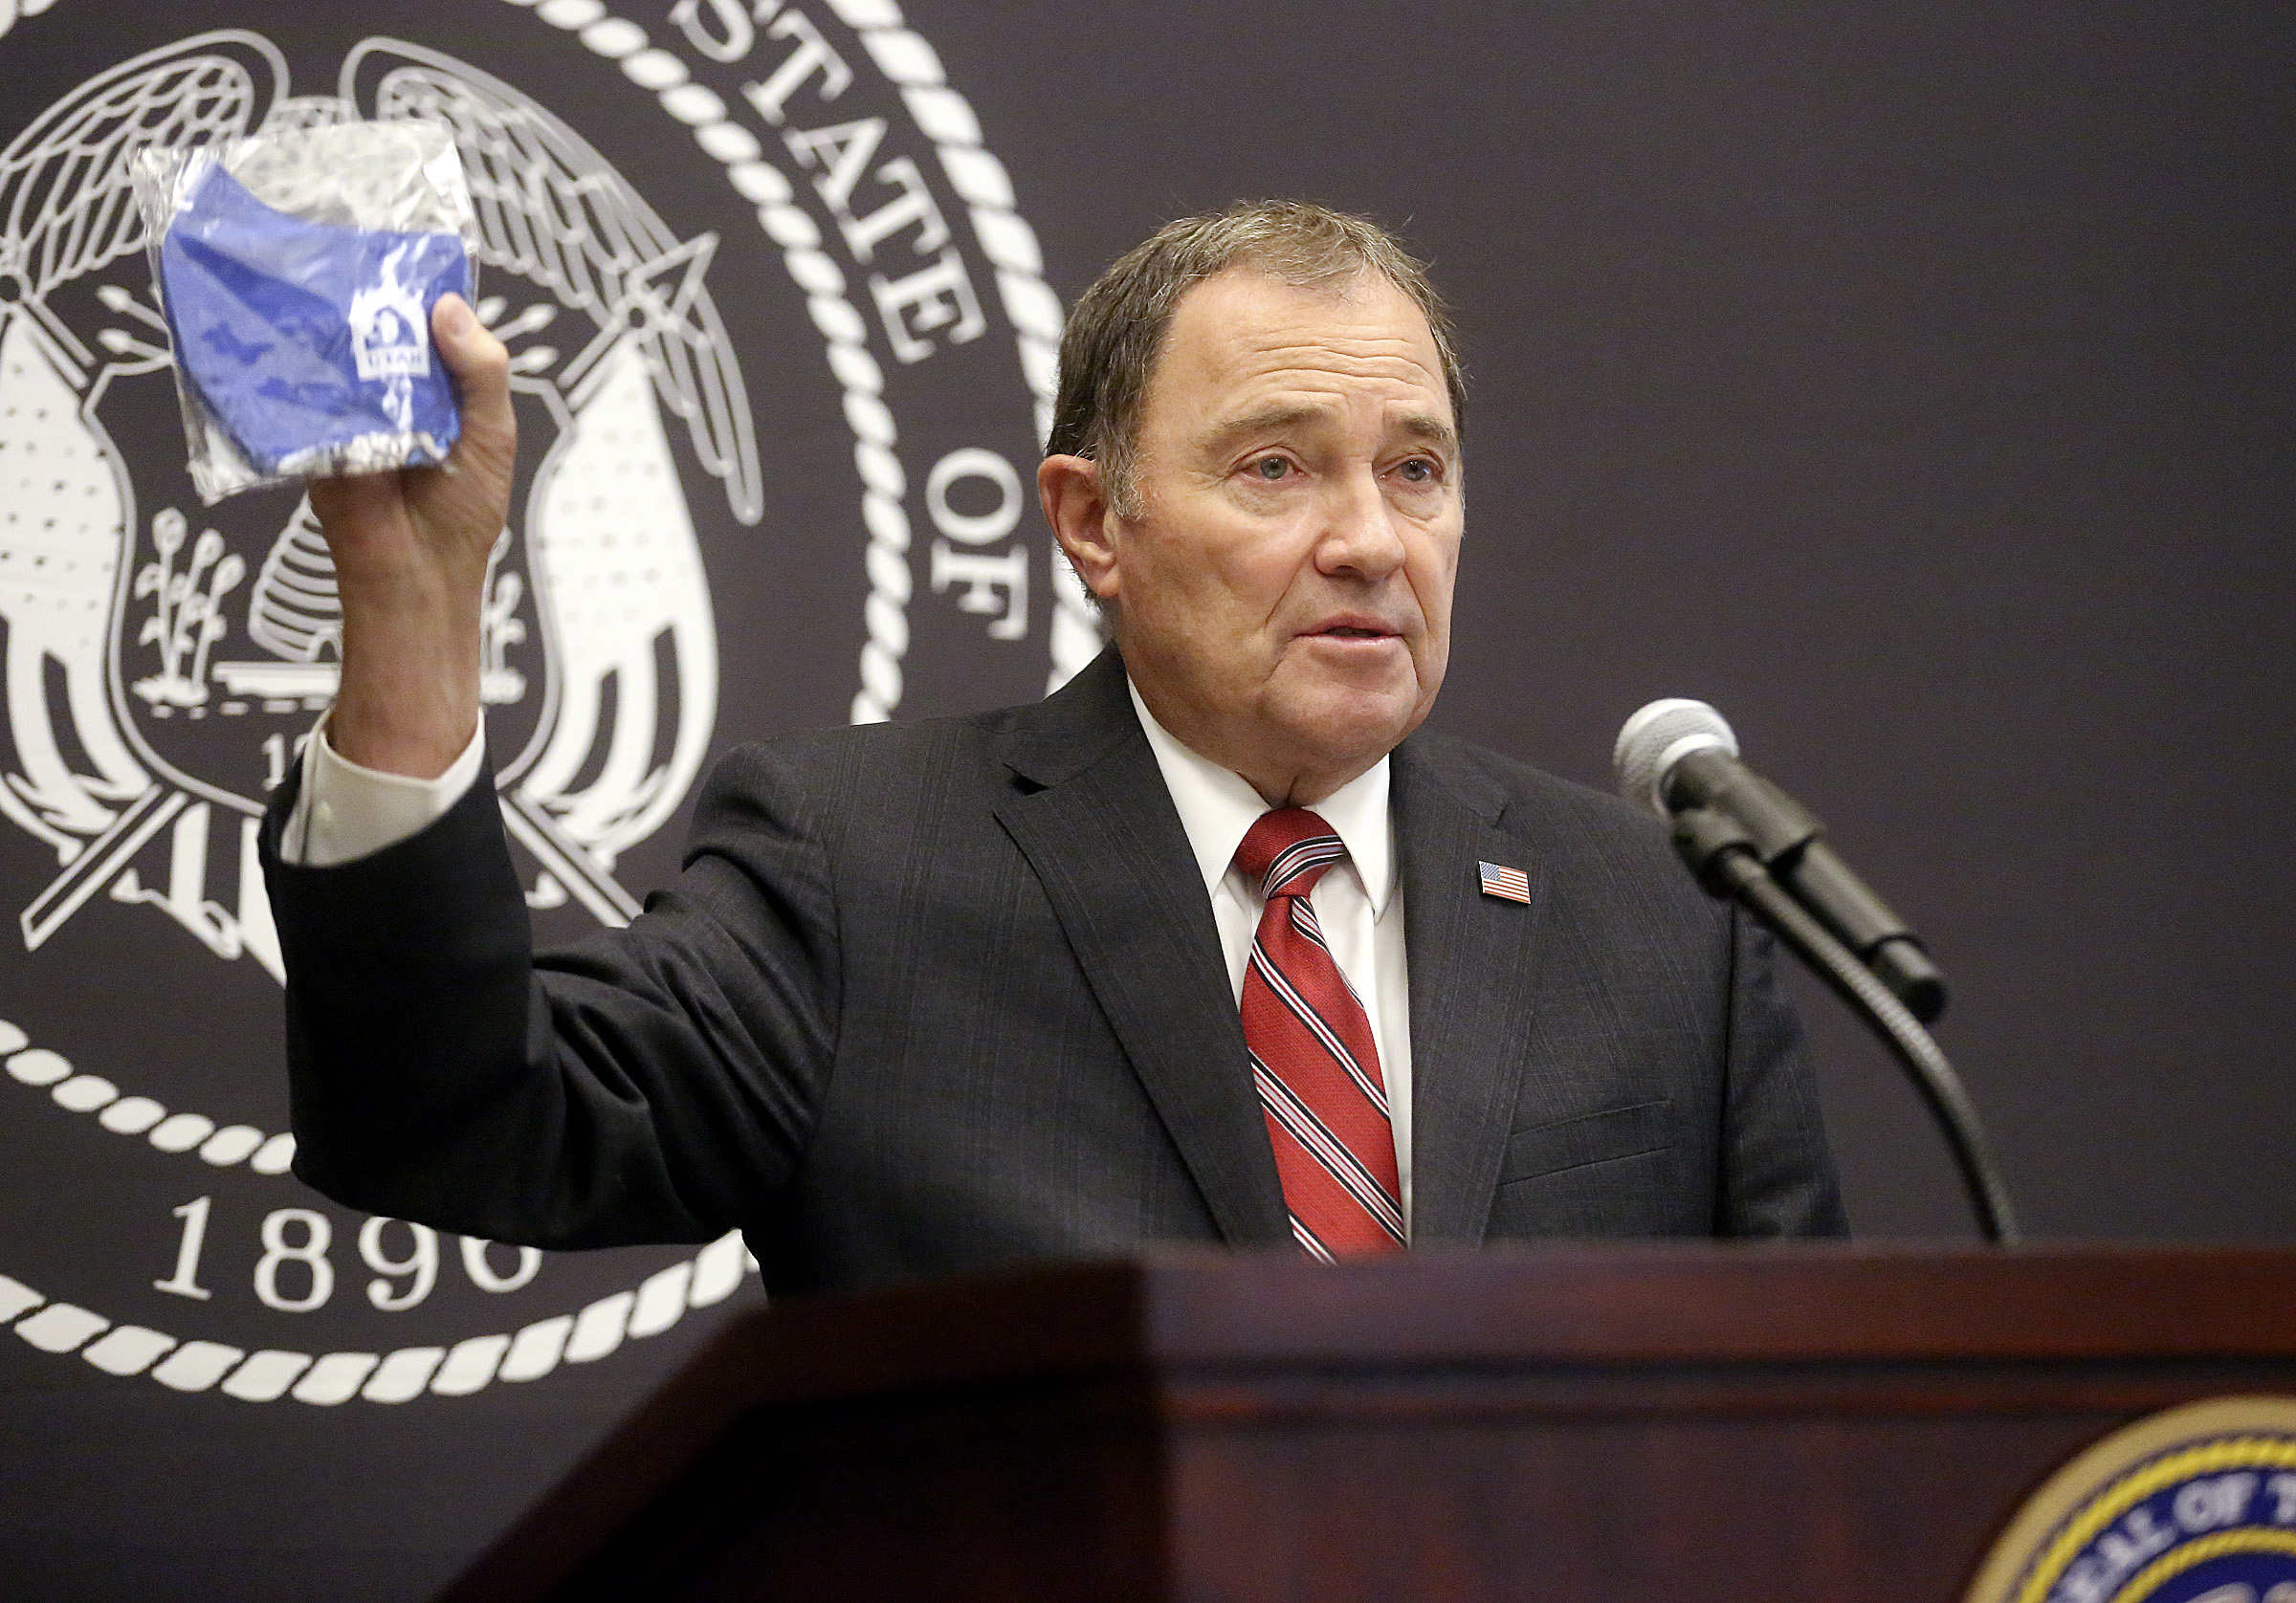 Gov. Gary Herbert holds a face mask during a COVID-19 briefing at the Capitol in Salt Lake City on Thursday, July 16, 2020. Herbert announces face coverings will be provided to K-12 students when they return to the classroom.